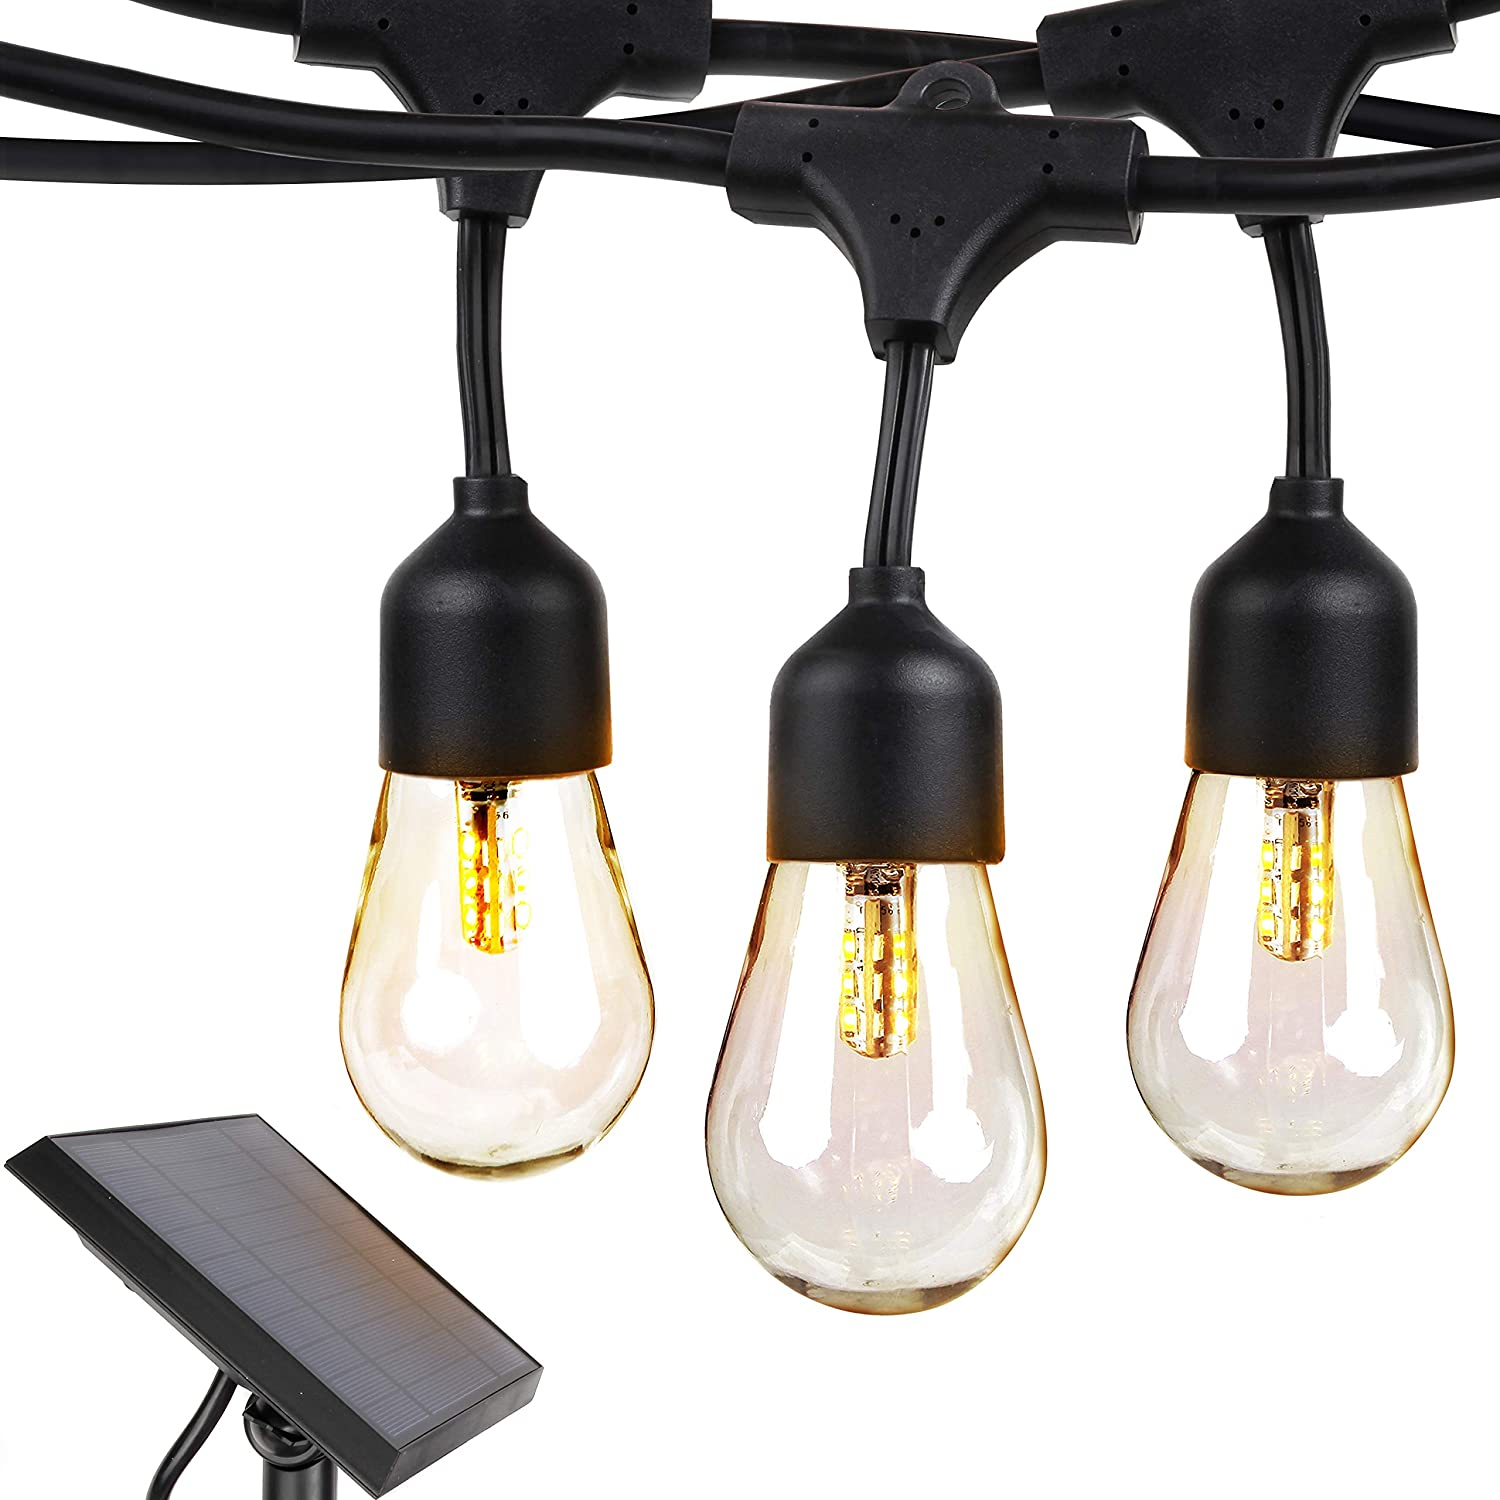 Brightech Ambience Pro - Waterproof, Solar Power Outdoor String Lights